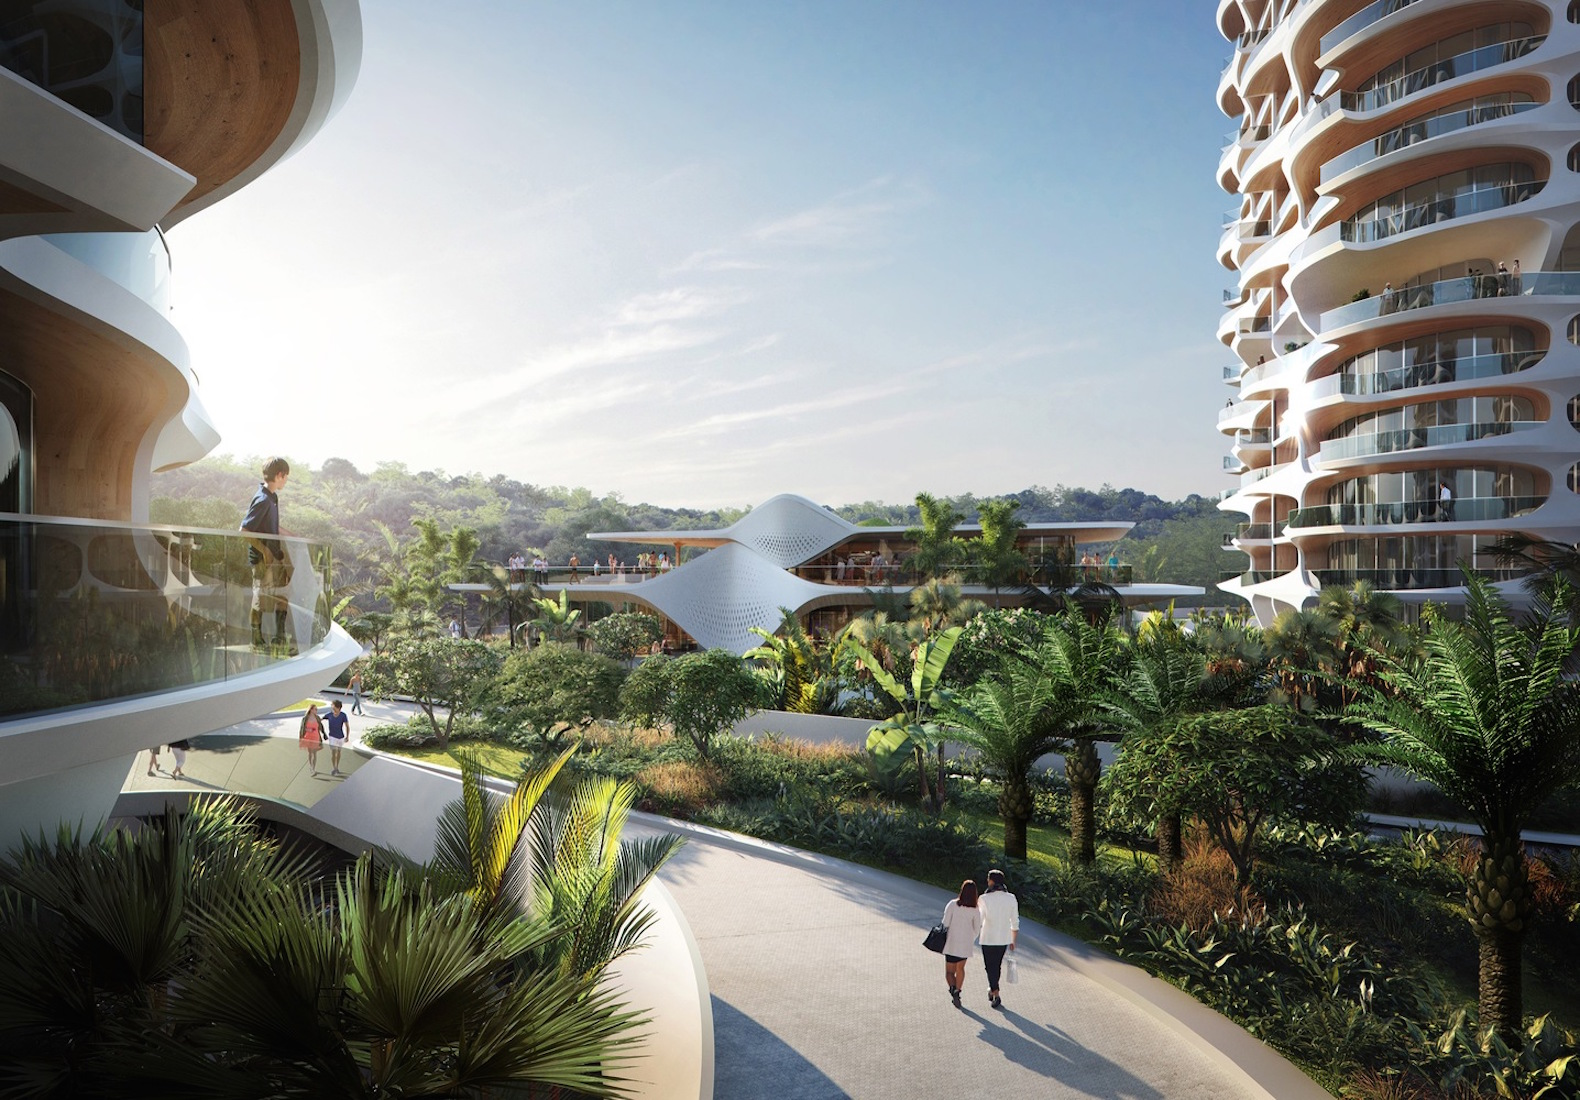 Residential development inhabitat green design innovation zaha hadid architects designs ecological residential complex for mexicos riviera maya sciox Images